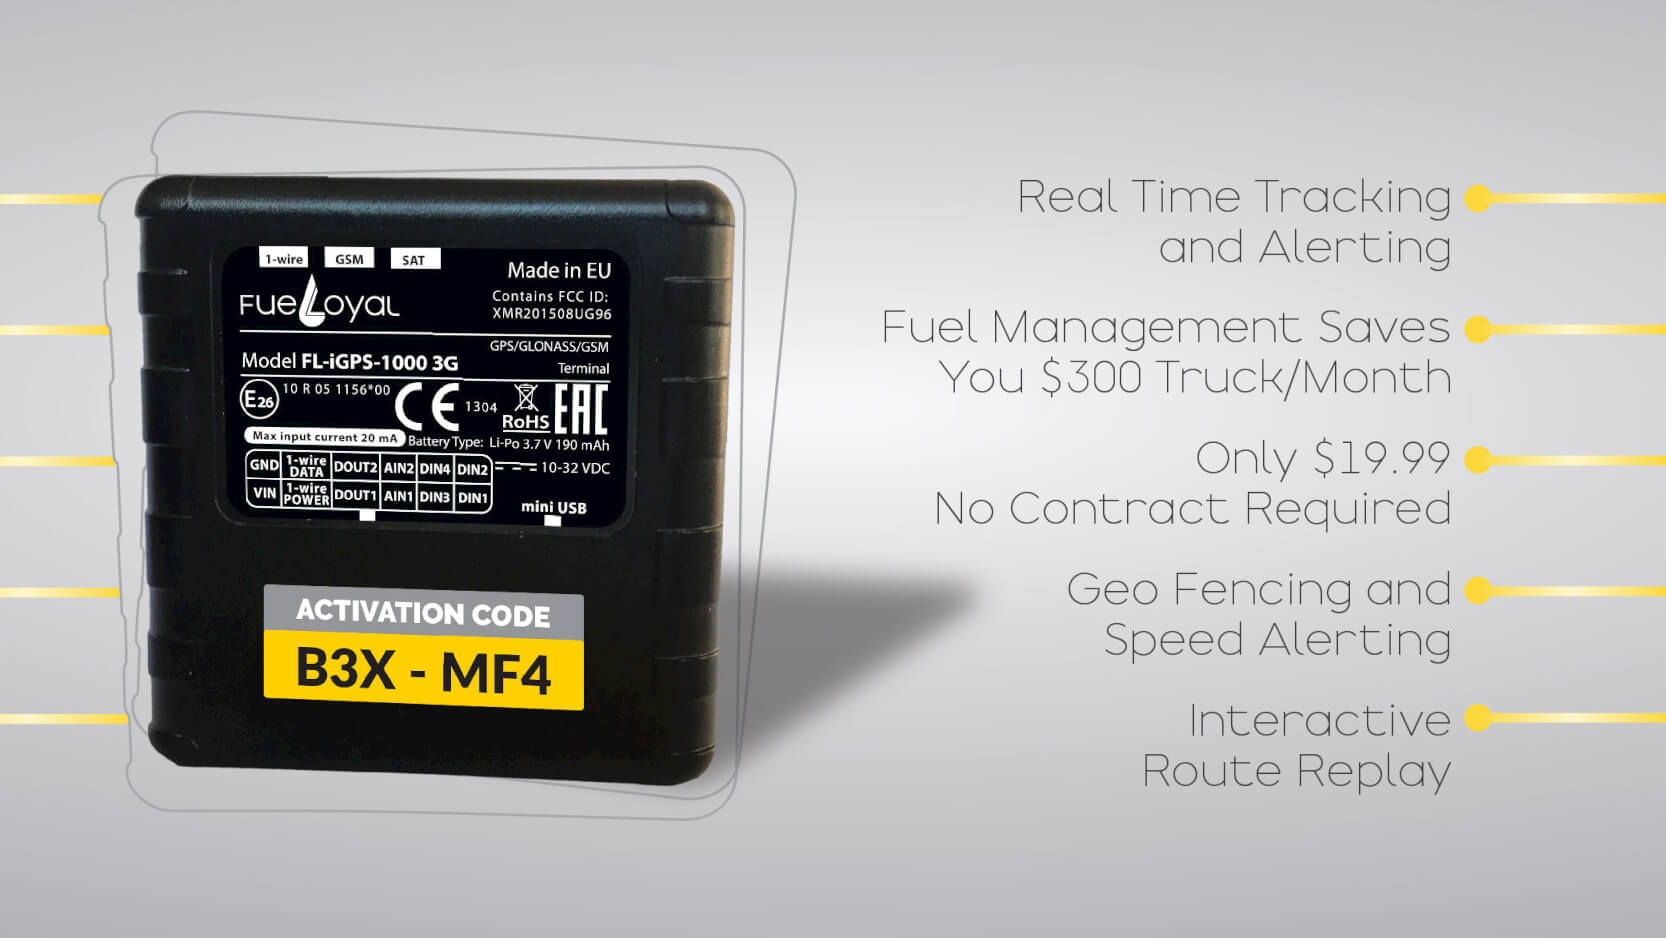 Fueloyal Smart GPS Tracking with fuel purchase optimization features!